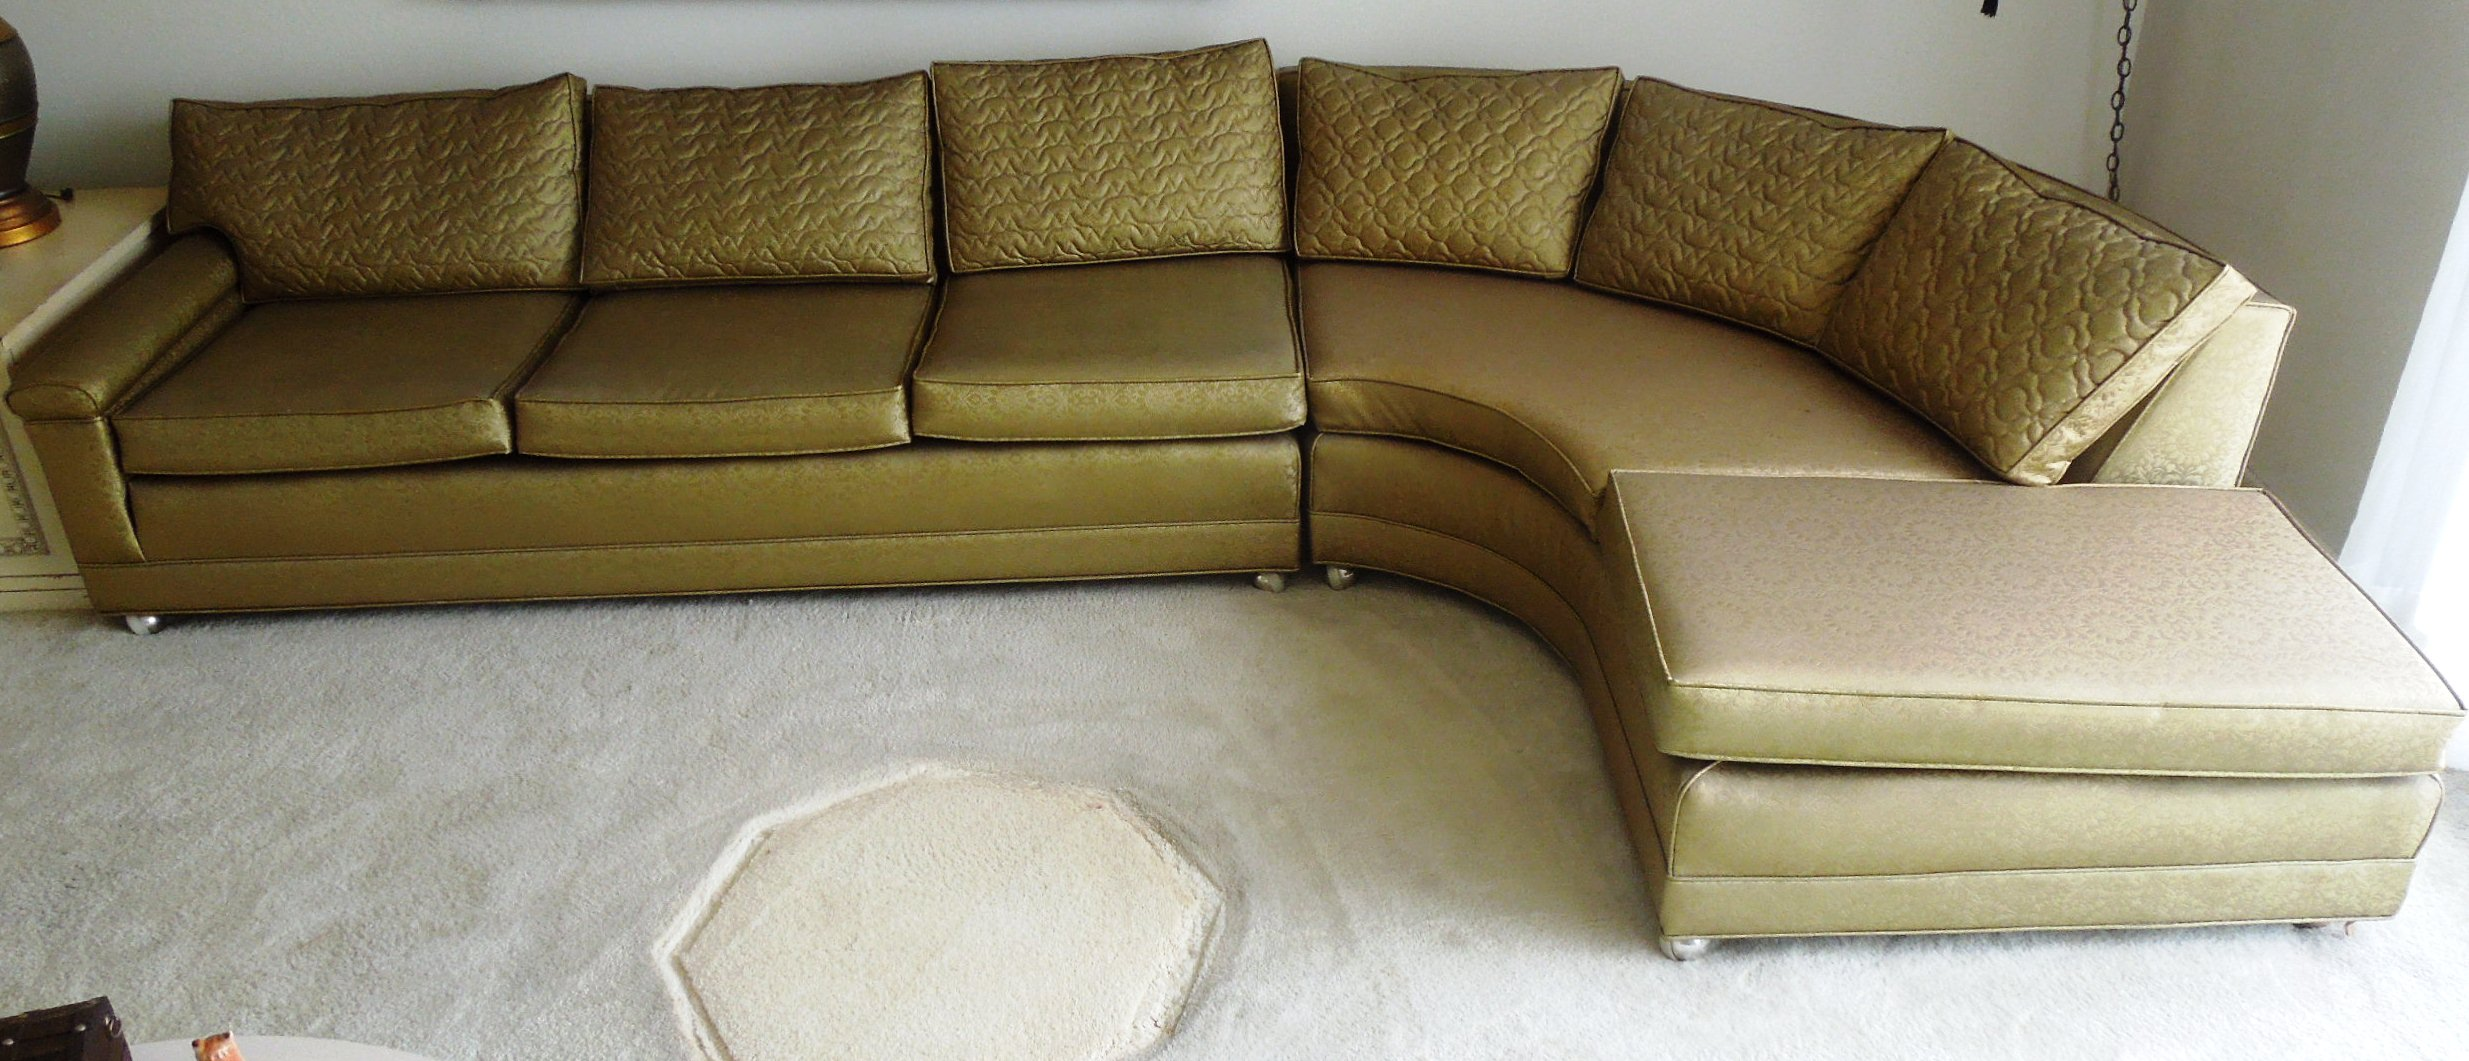 Vintage 1960s sofa couch vinyl gold color for sale for 80s furniture for sale